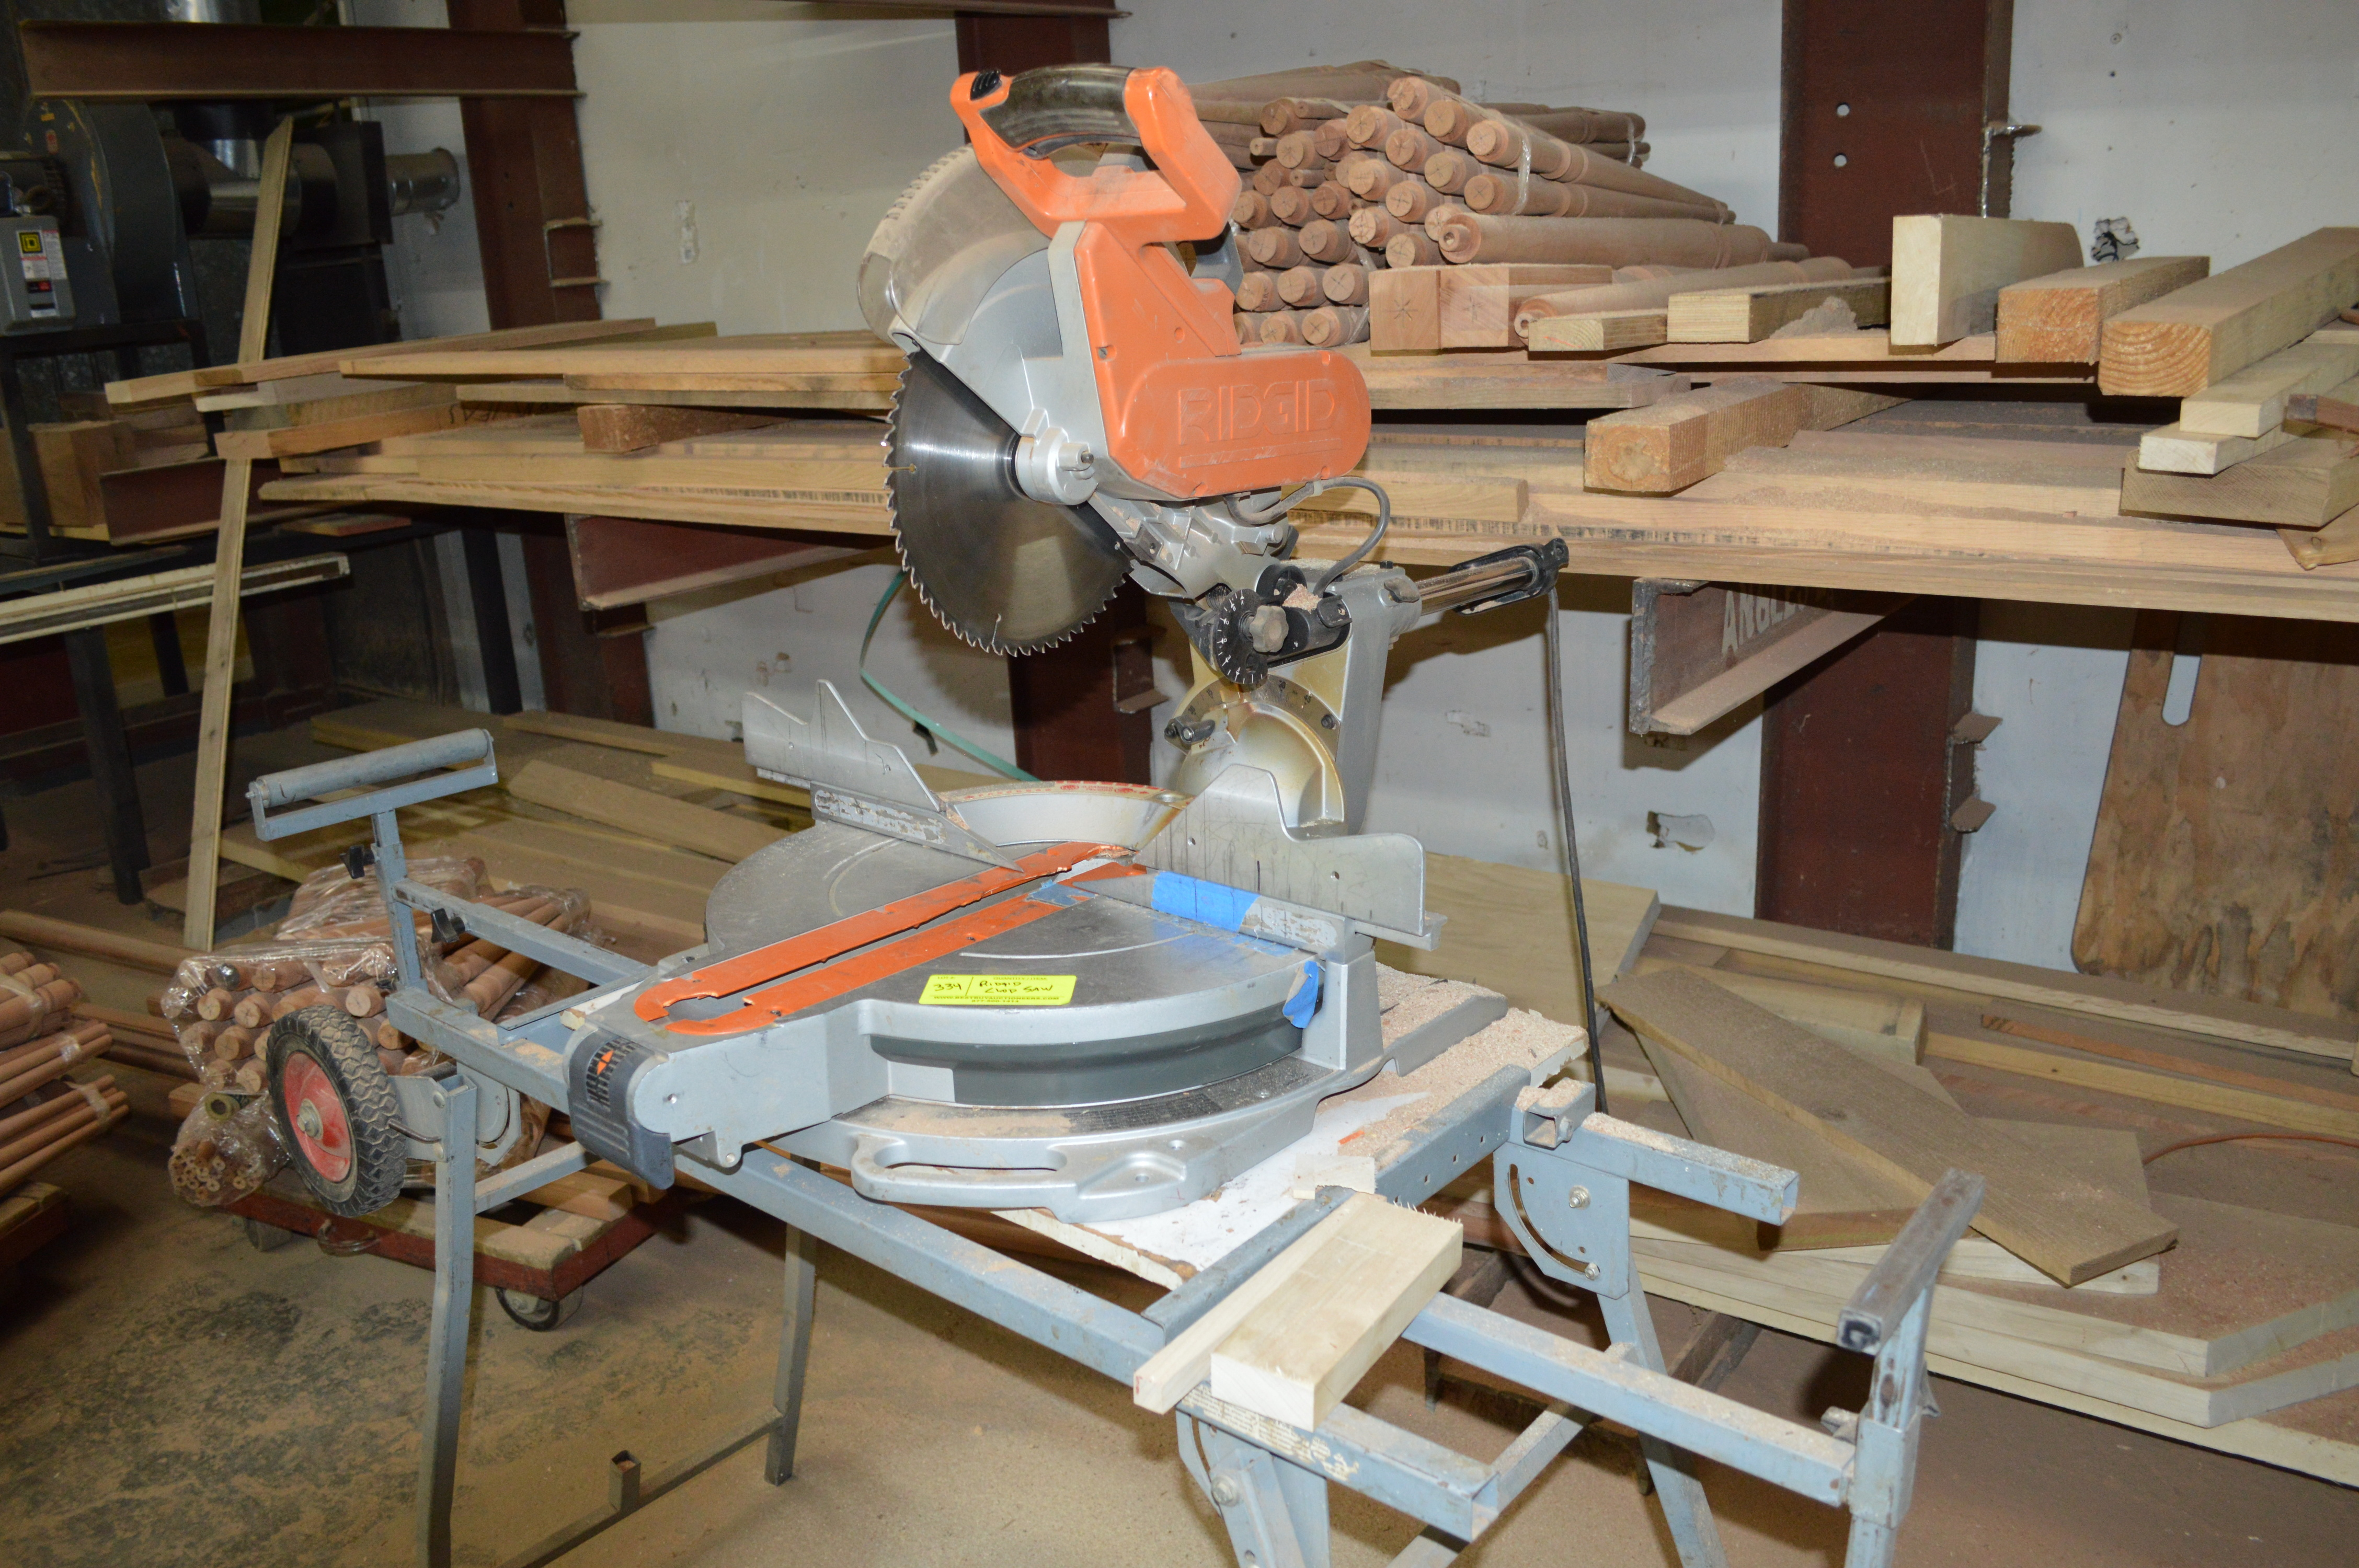 Lot 334 - RIDGID 12 INCH LASER GUIDED MITRE TABLE SAW AND STAND